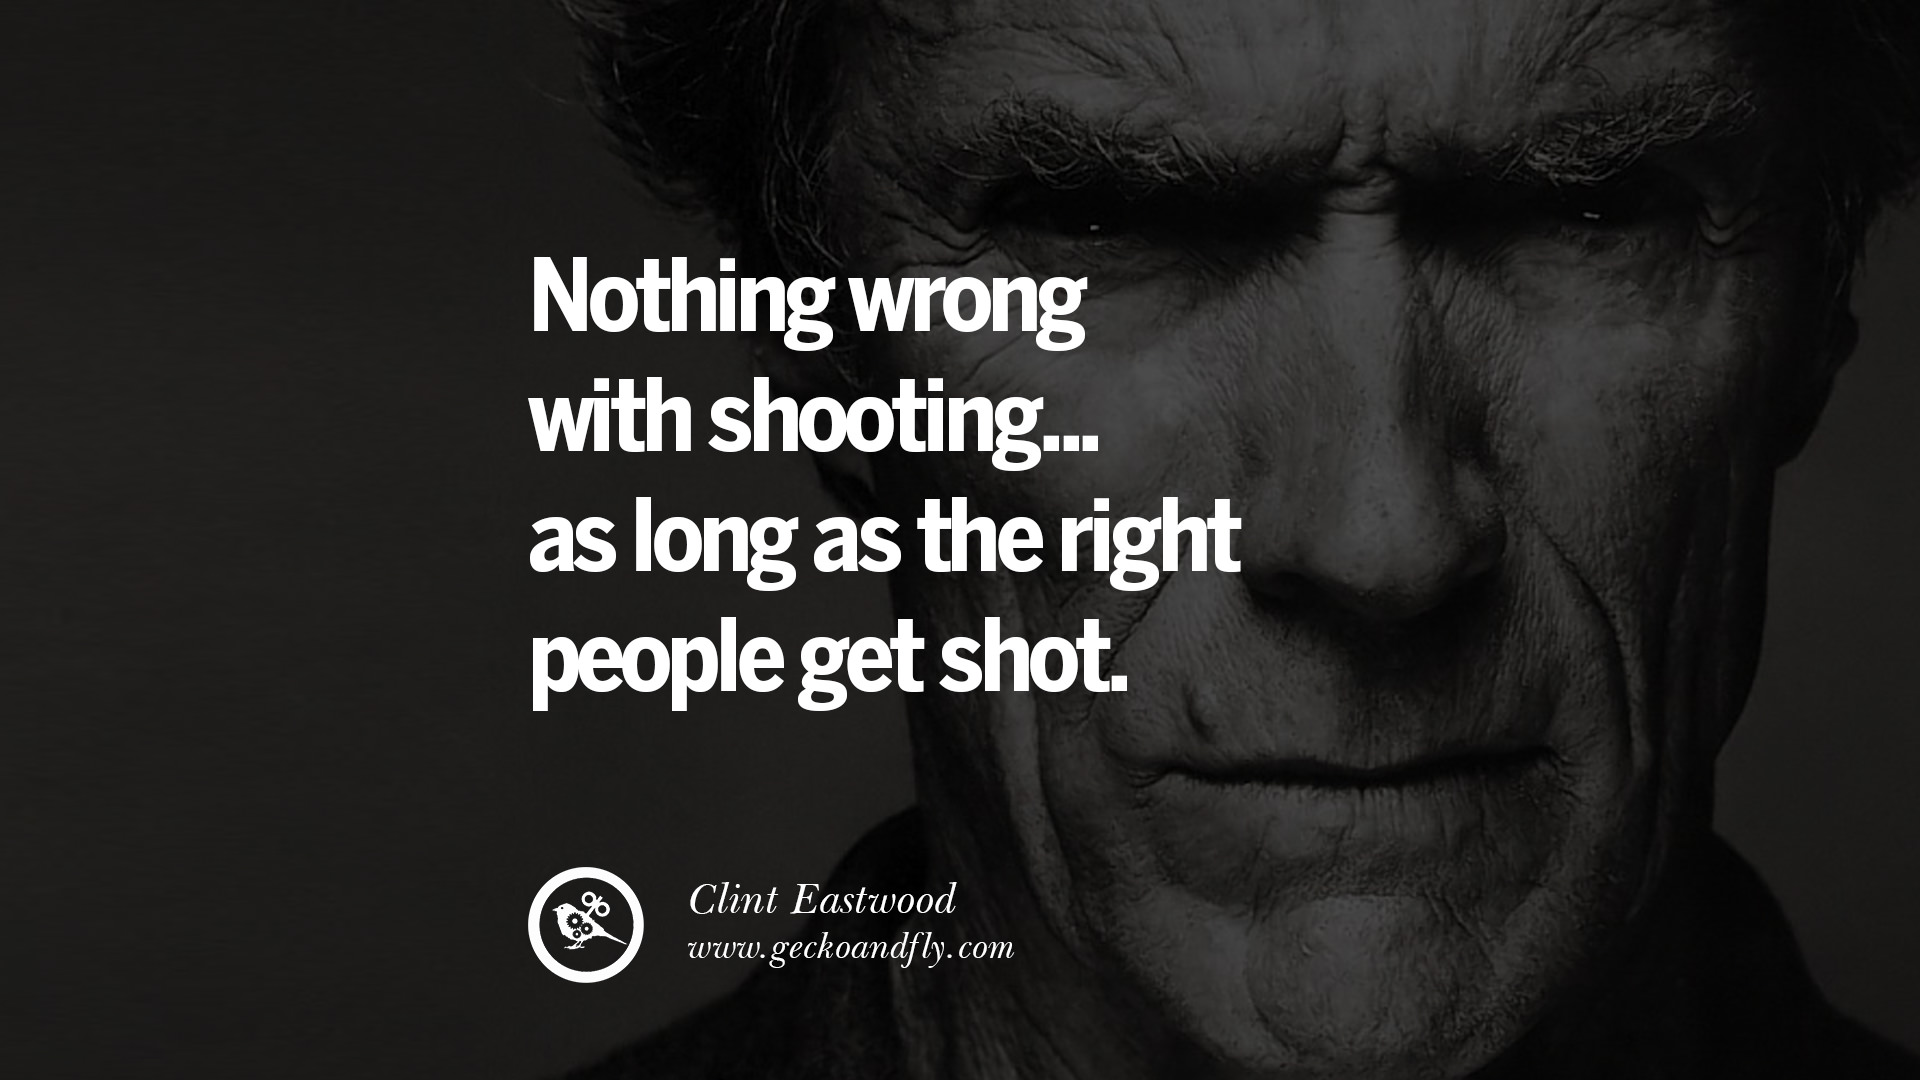 Shooting Quotes 24 Inspiring Clint Eastwood Quotes On Politics Life And Work